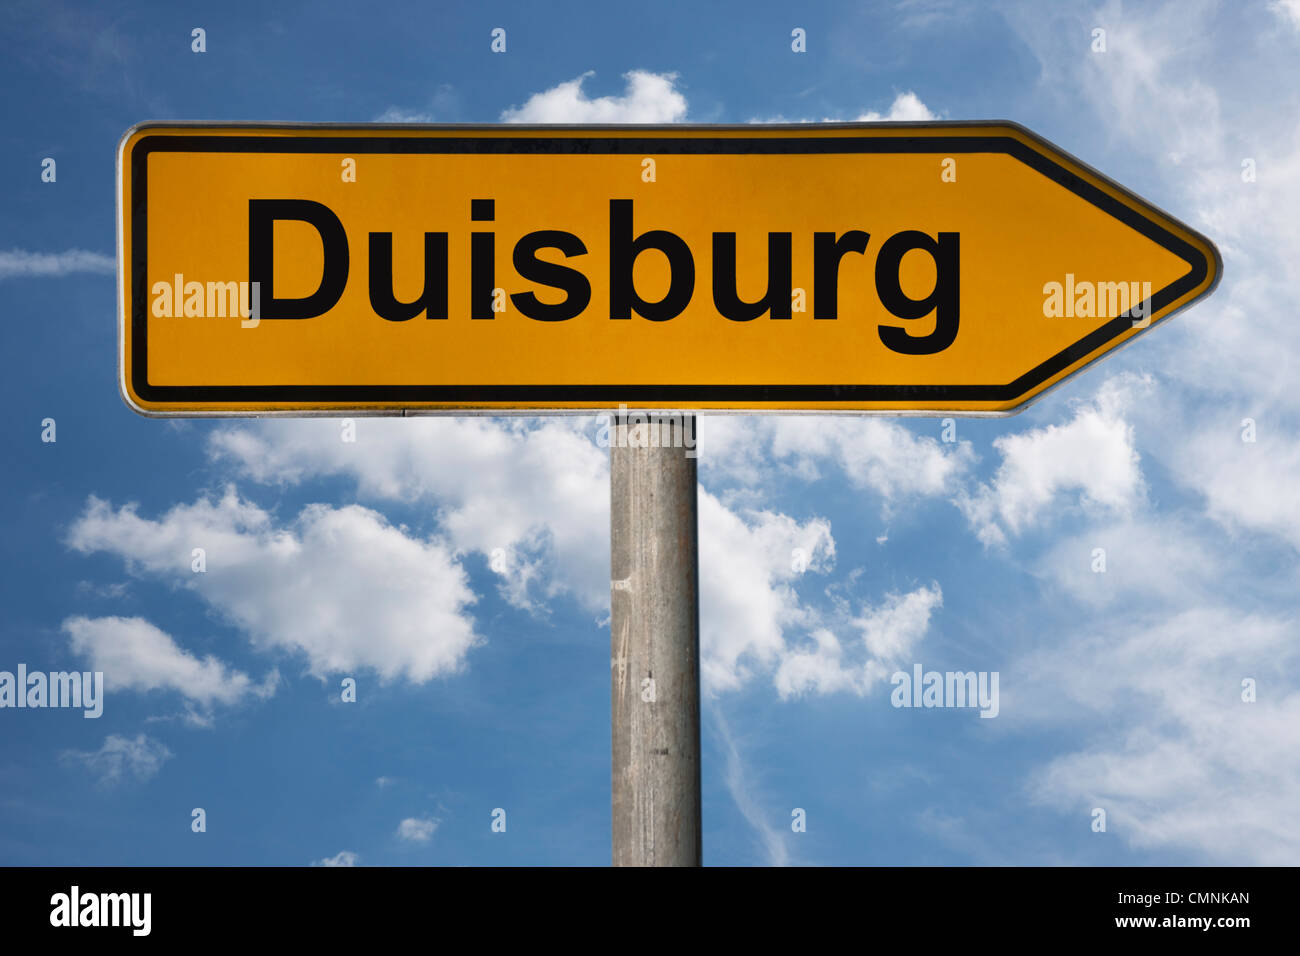 Detail photo of a signpost with the inscription Duisburg, North Rhine-Westphalia, Germany, Europe - Stock Image